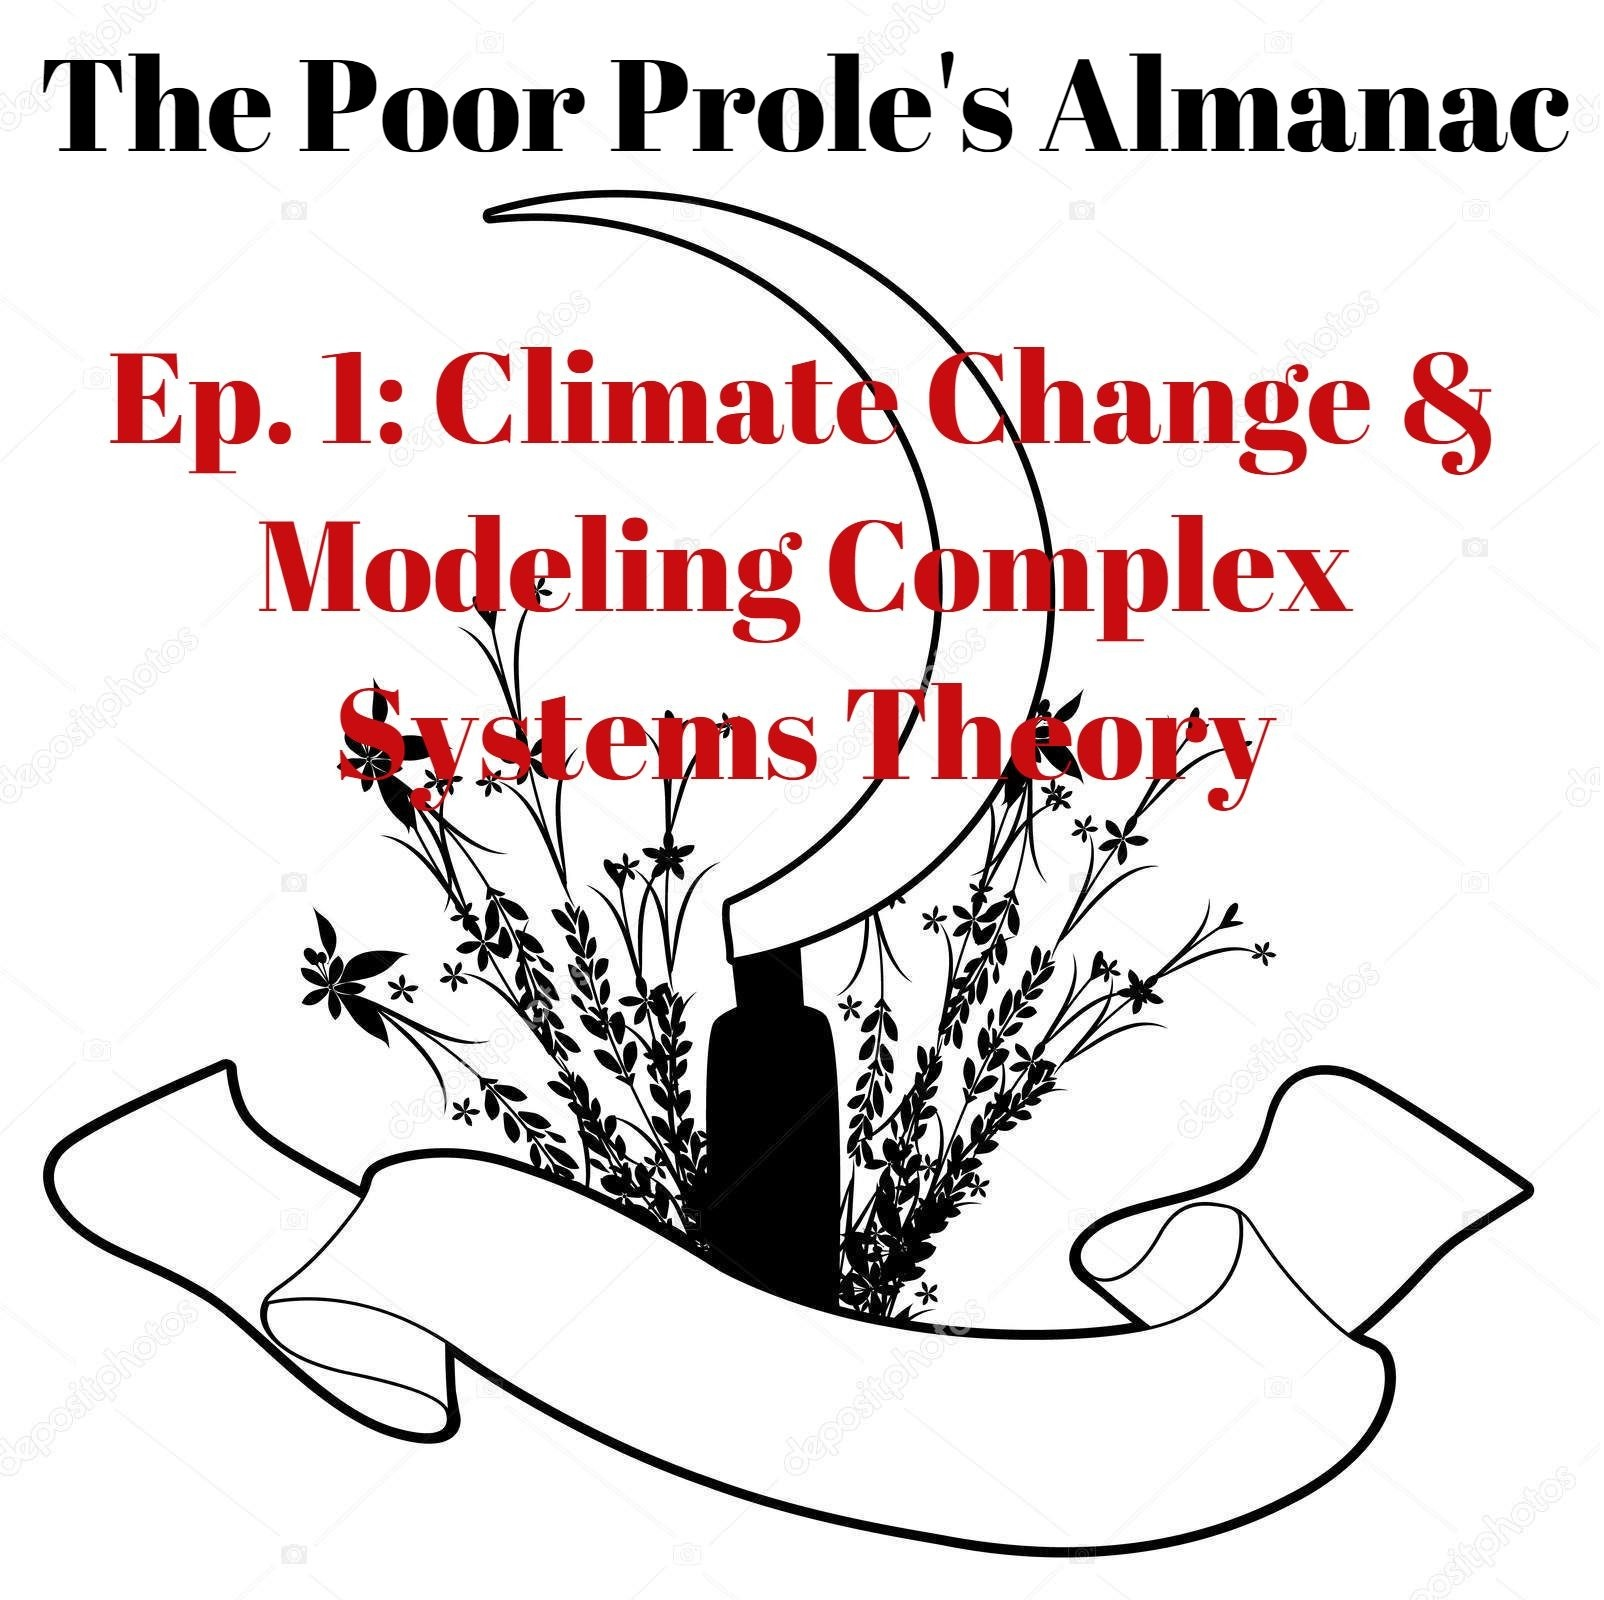 Climate Change & Modeling Complex Systems Theory